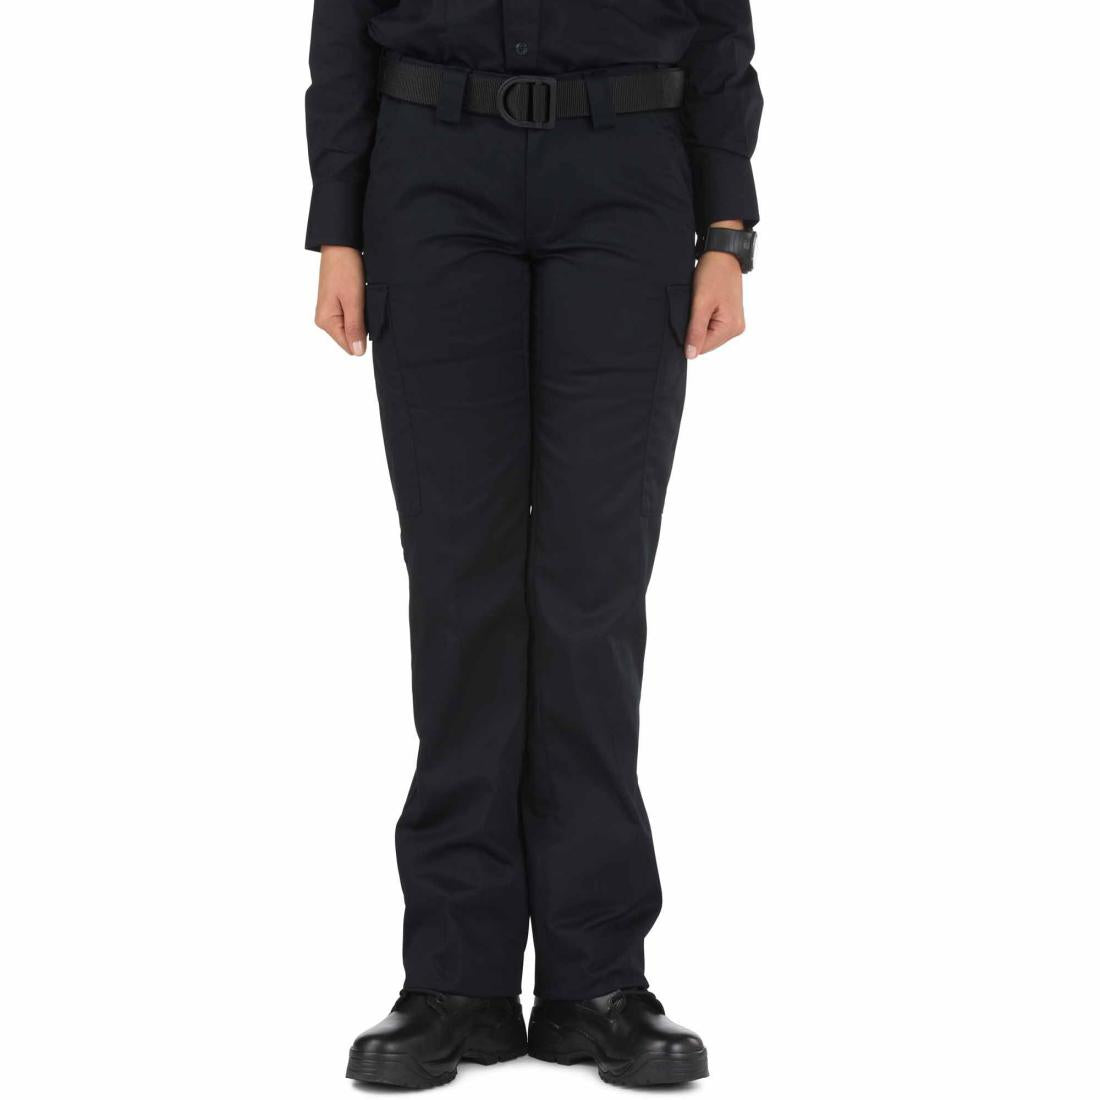 5.11 Tactical 64306 Women's Twill PDU Class - B Cargo Pant Midnight Navy - 2